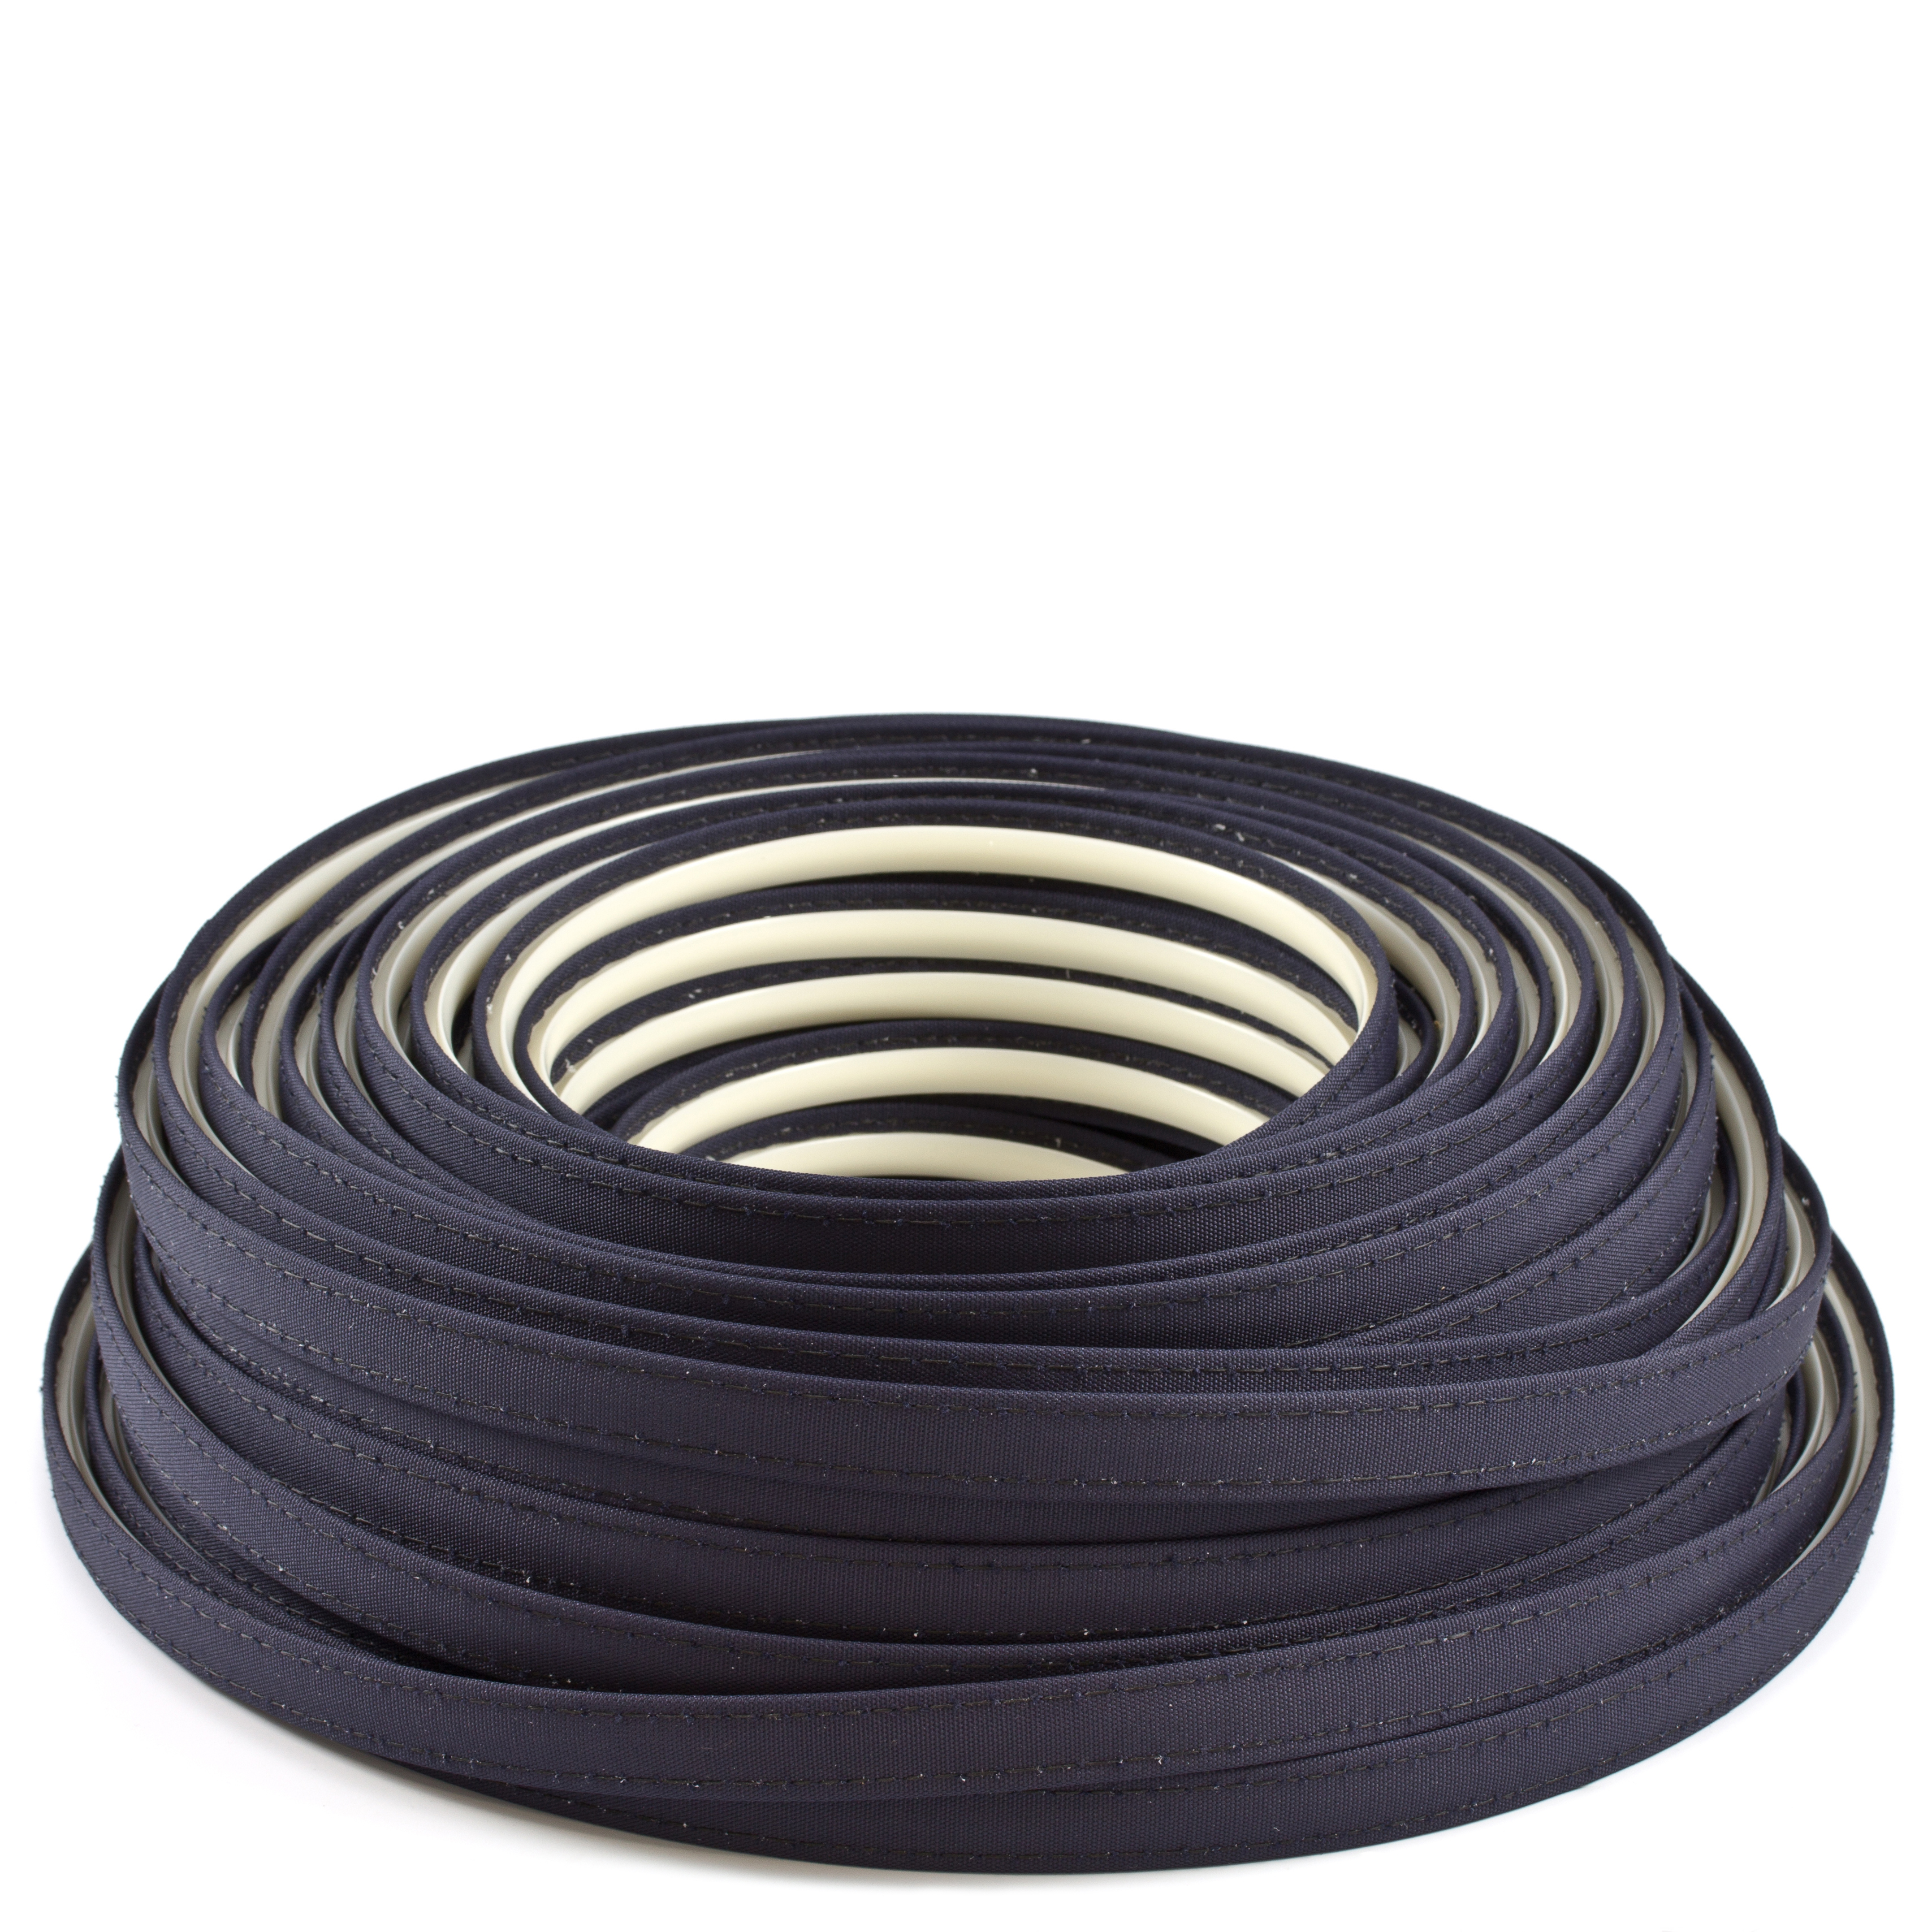 Thumbnail Steel Stitch Firesist Covered ZipStrip #82010 Admiral Navy 160' Full Rolls Only 1